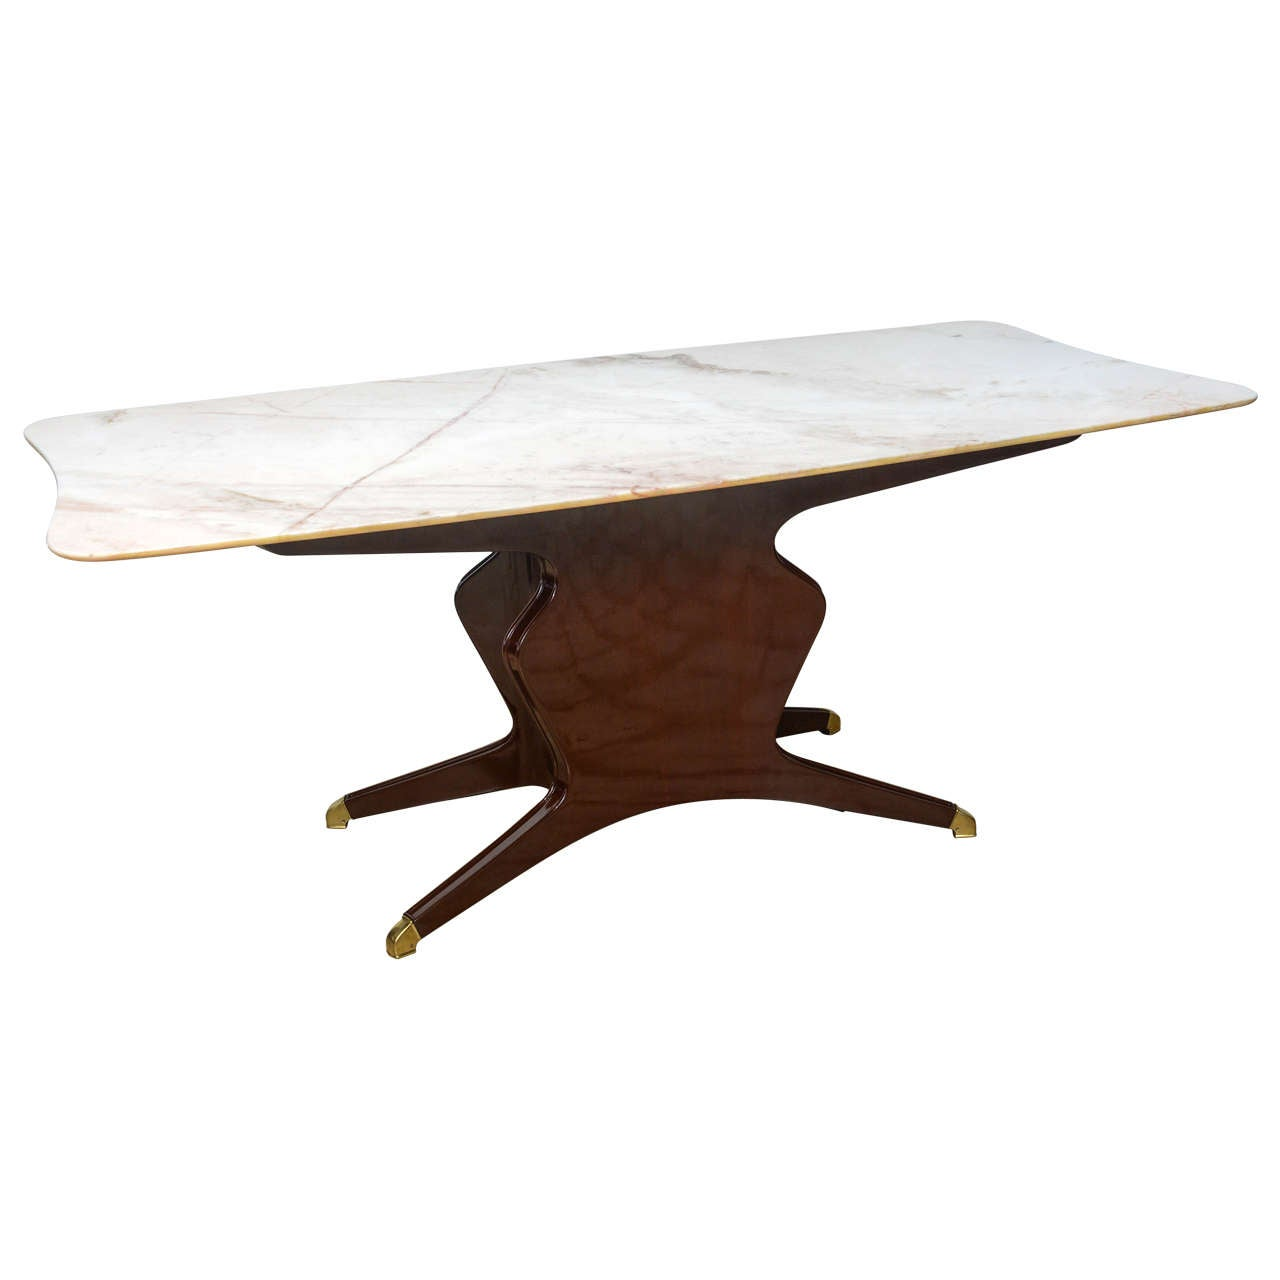 Italian Modern Mahogany, Brass and Onyx-Top Dining or Center Table